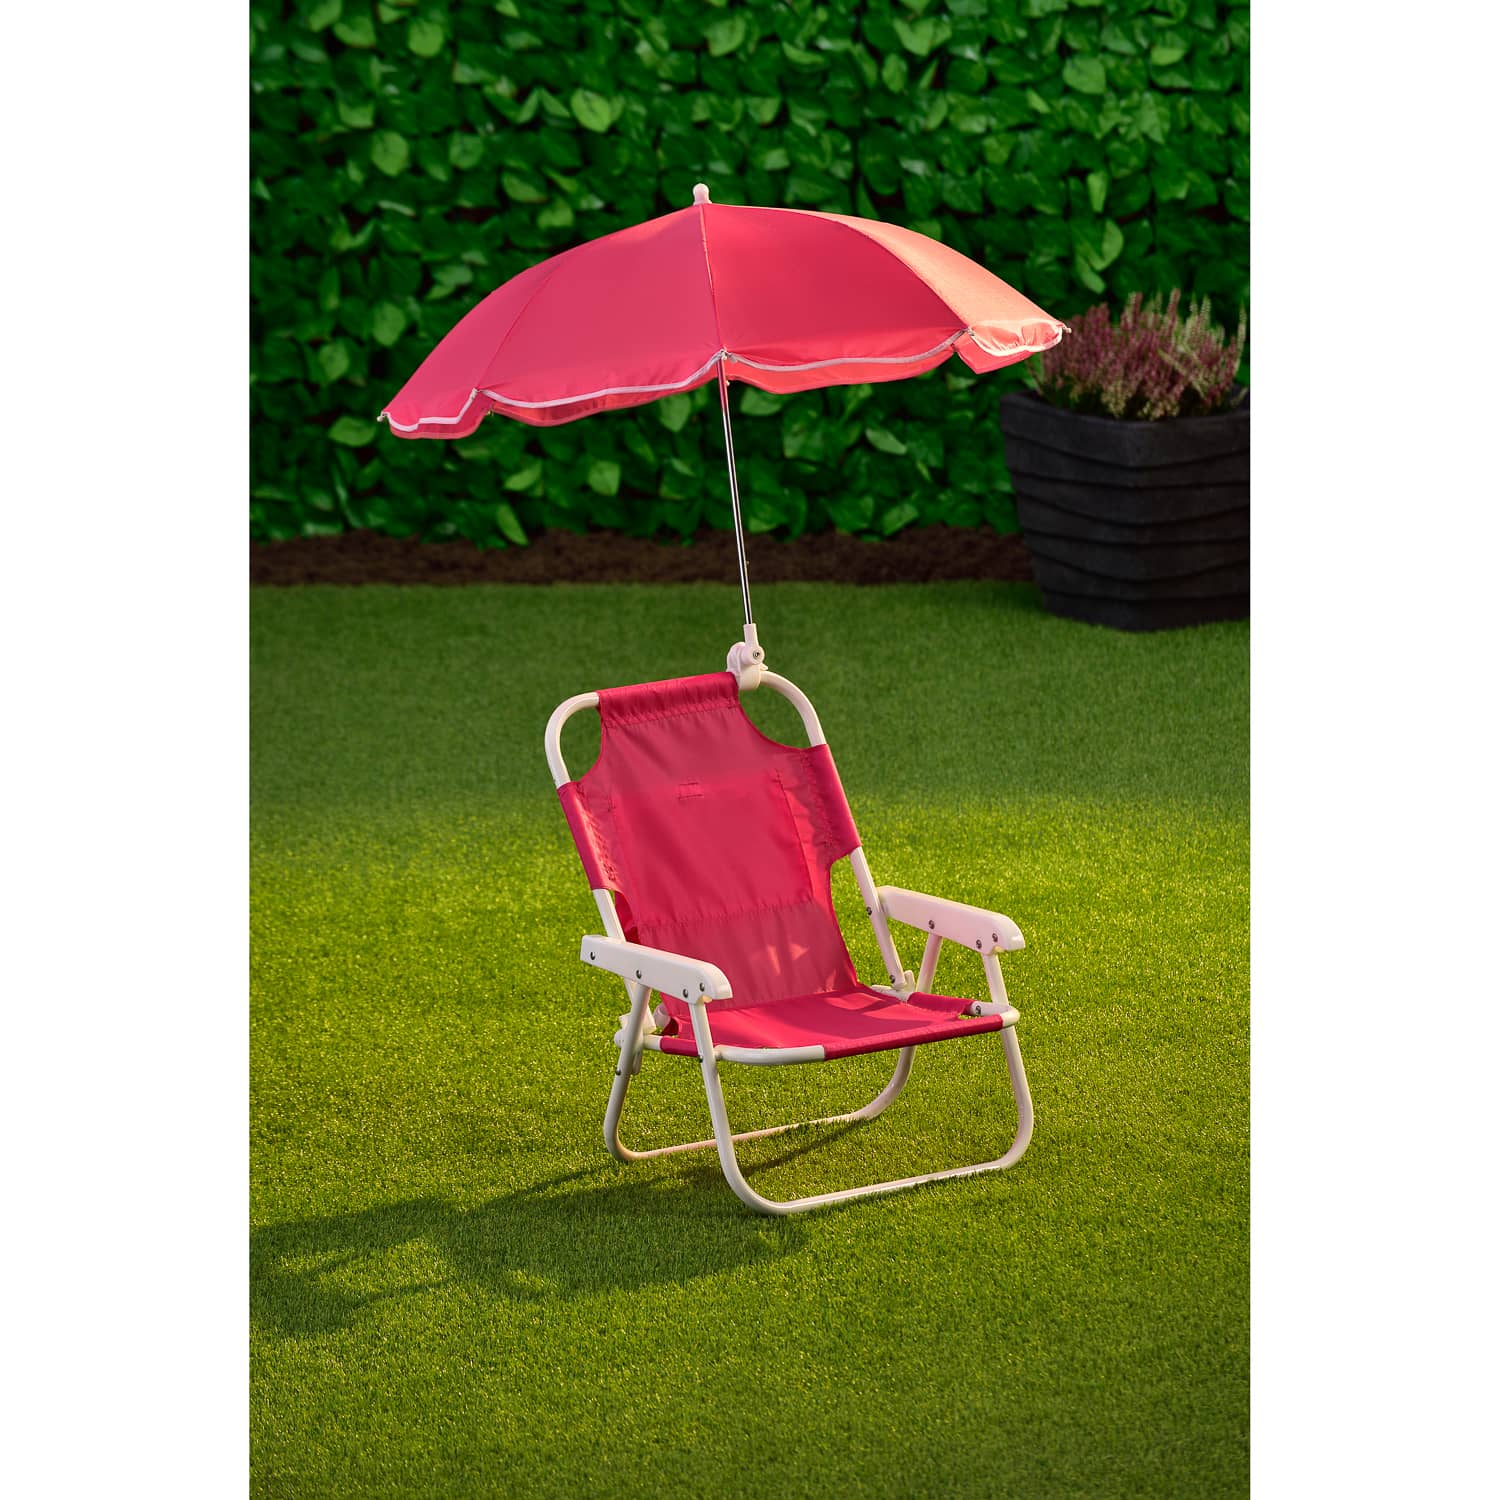 Bench Furniture Pink Baby Beach Chair Umbrella Outdoor Kids Shade New Picnic Camp Lawn Folding Garden Patio Instituteoffinearts Co In